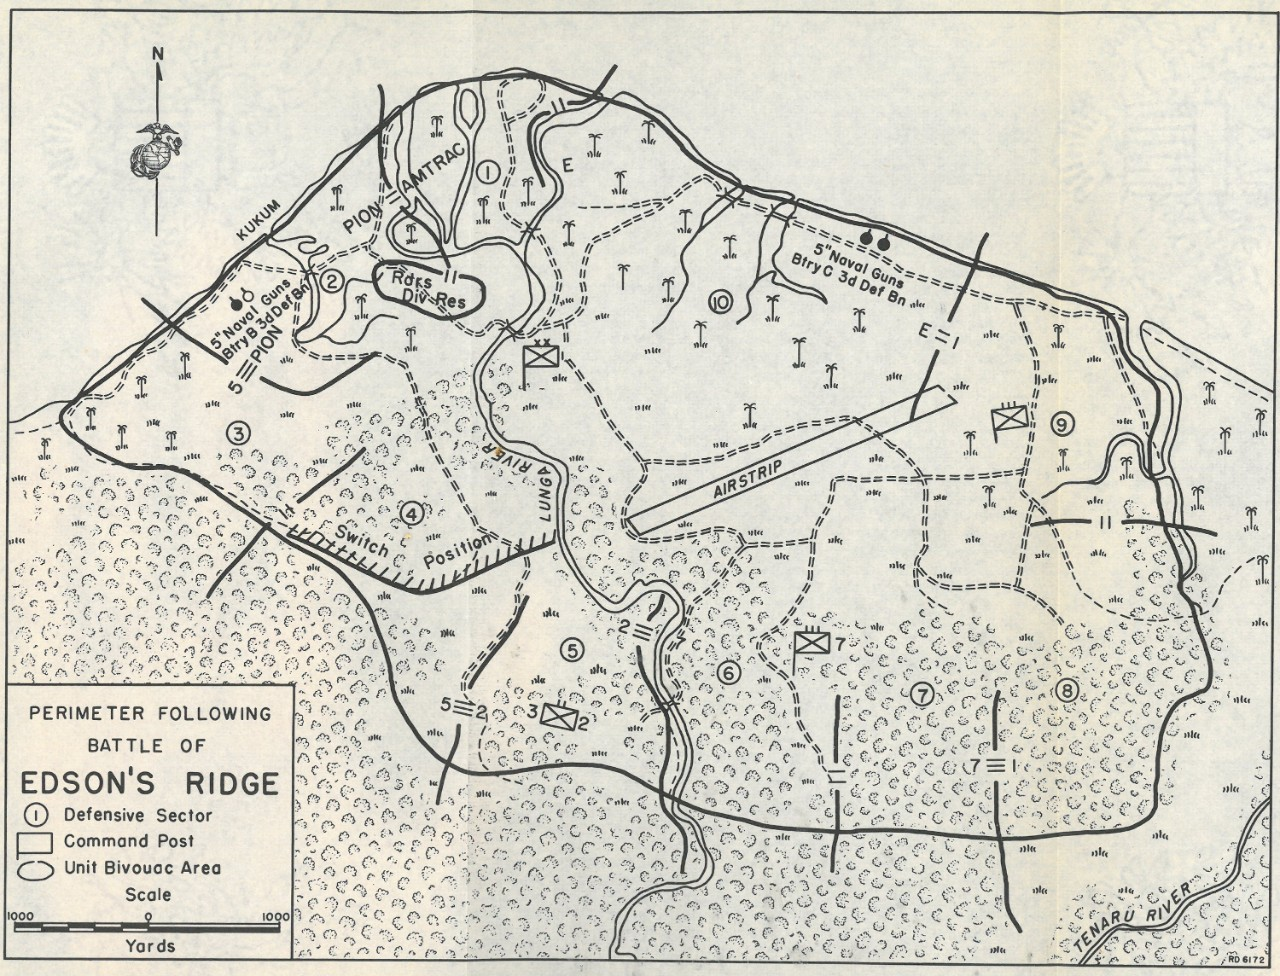 Map 10: Perimeter Following Battle of Edson's Ridge.